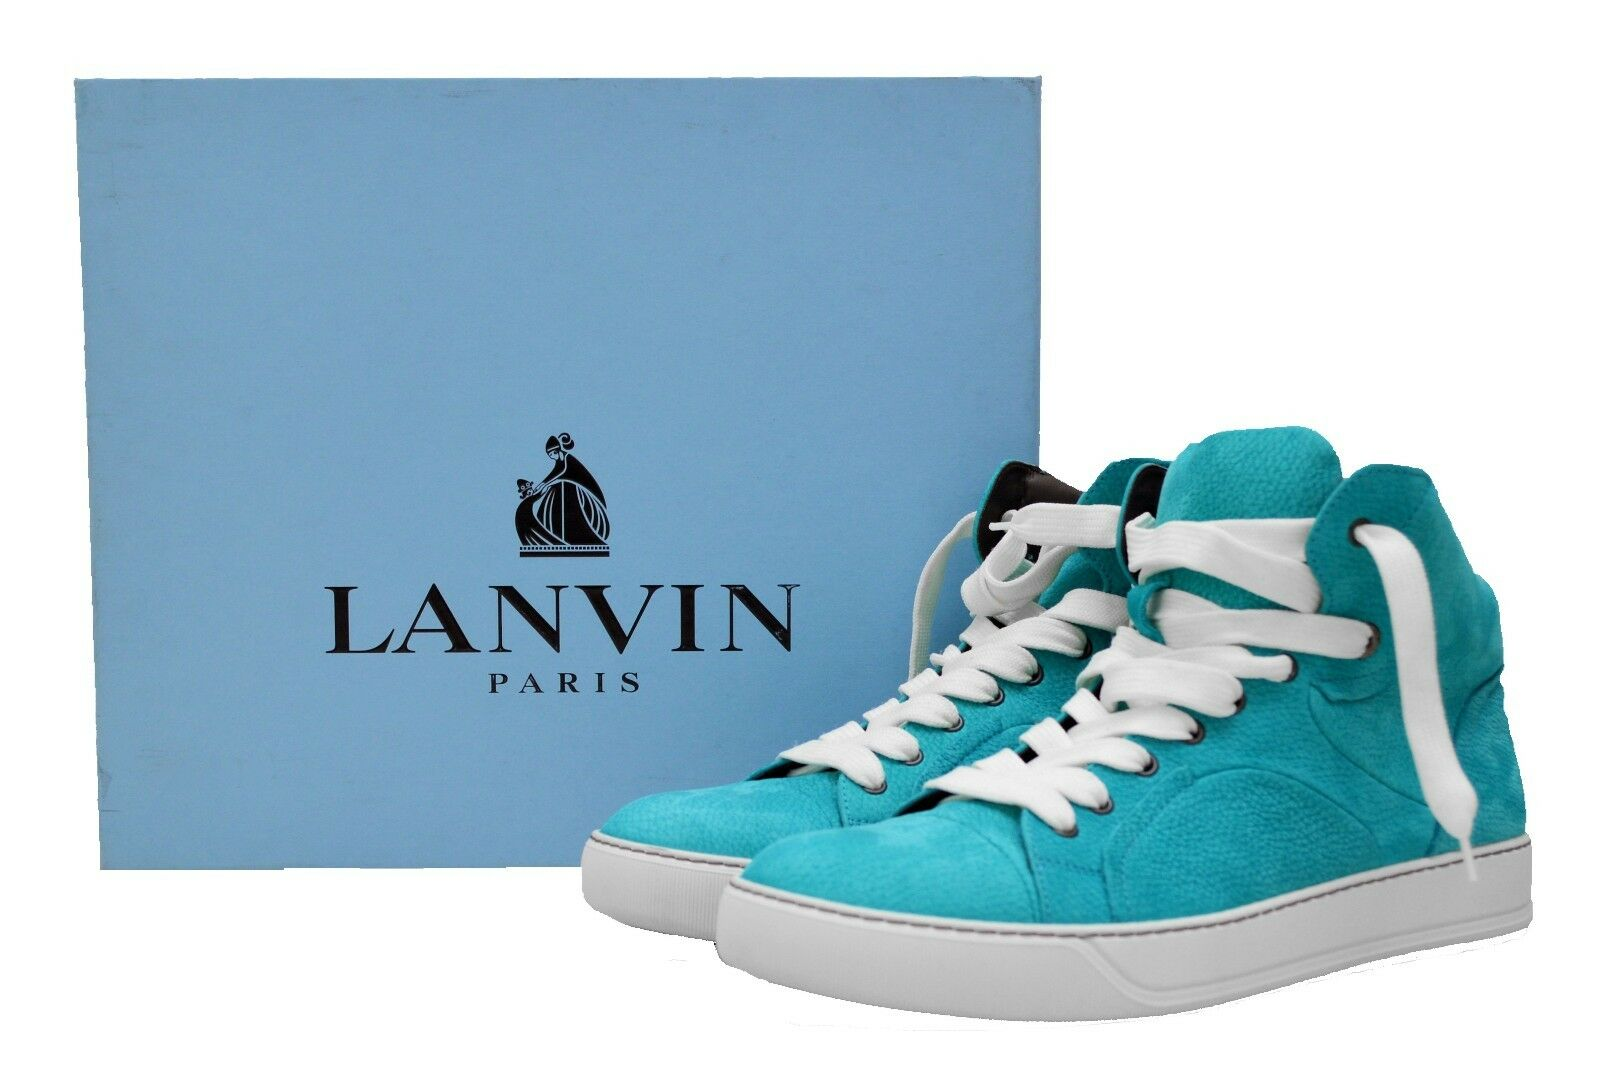 LANVIN PARIS Men's Textured Leather High-top Sneakers, Aqua bluee 9 ITALY  950